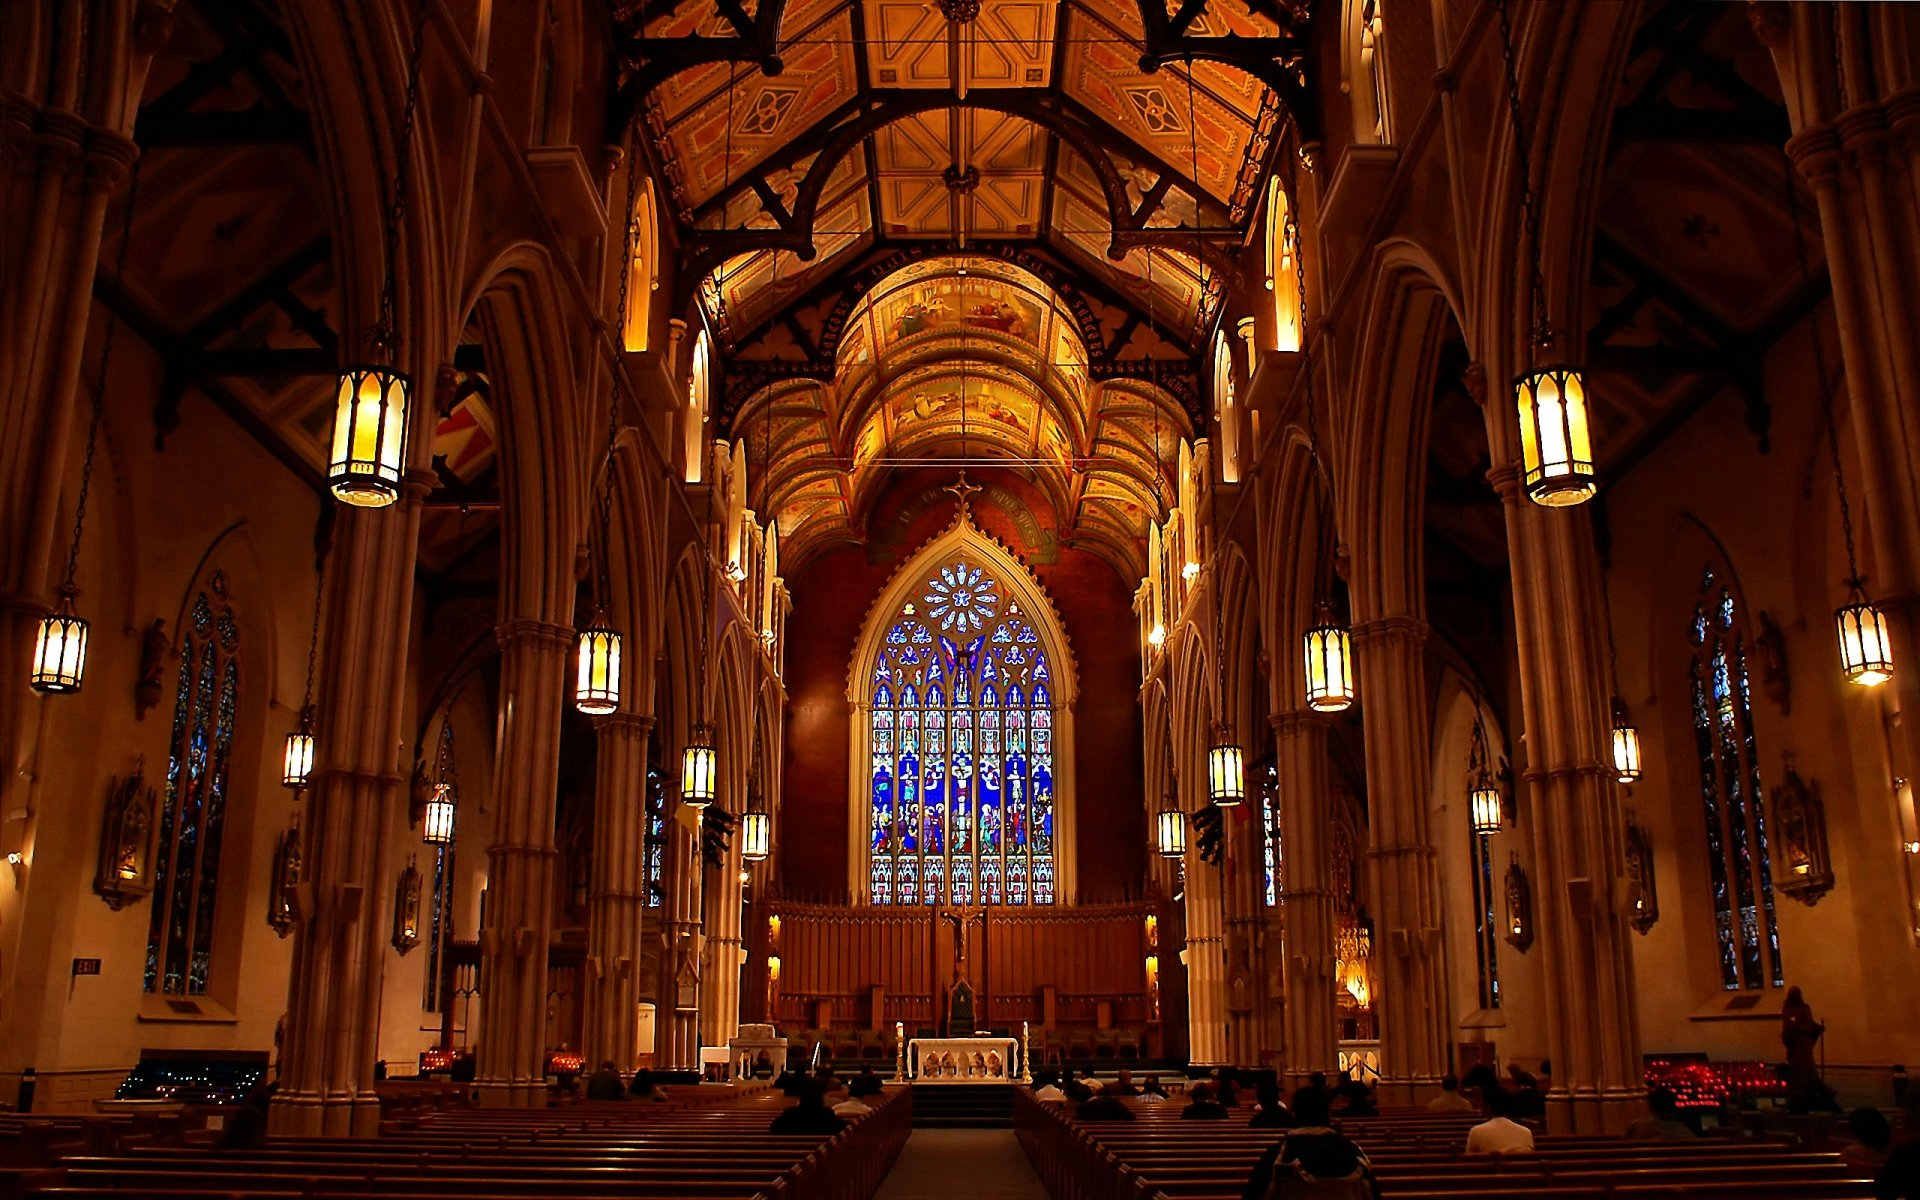 Religious - Cathedral  Building Light Church Architecture Wallpaper